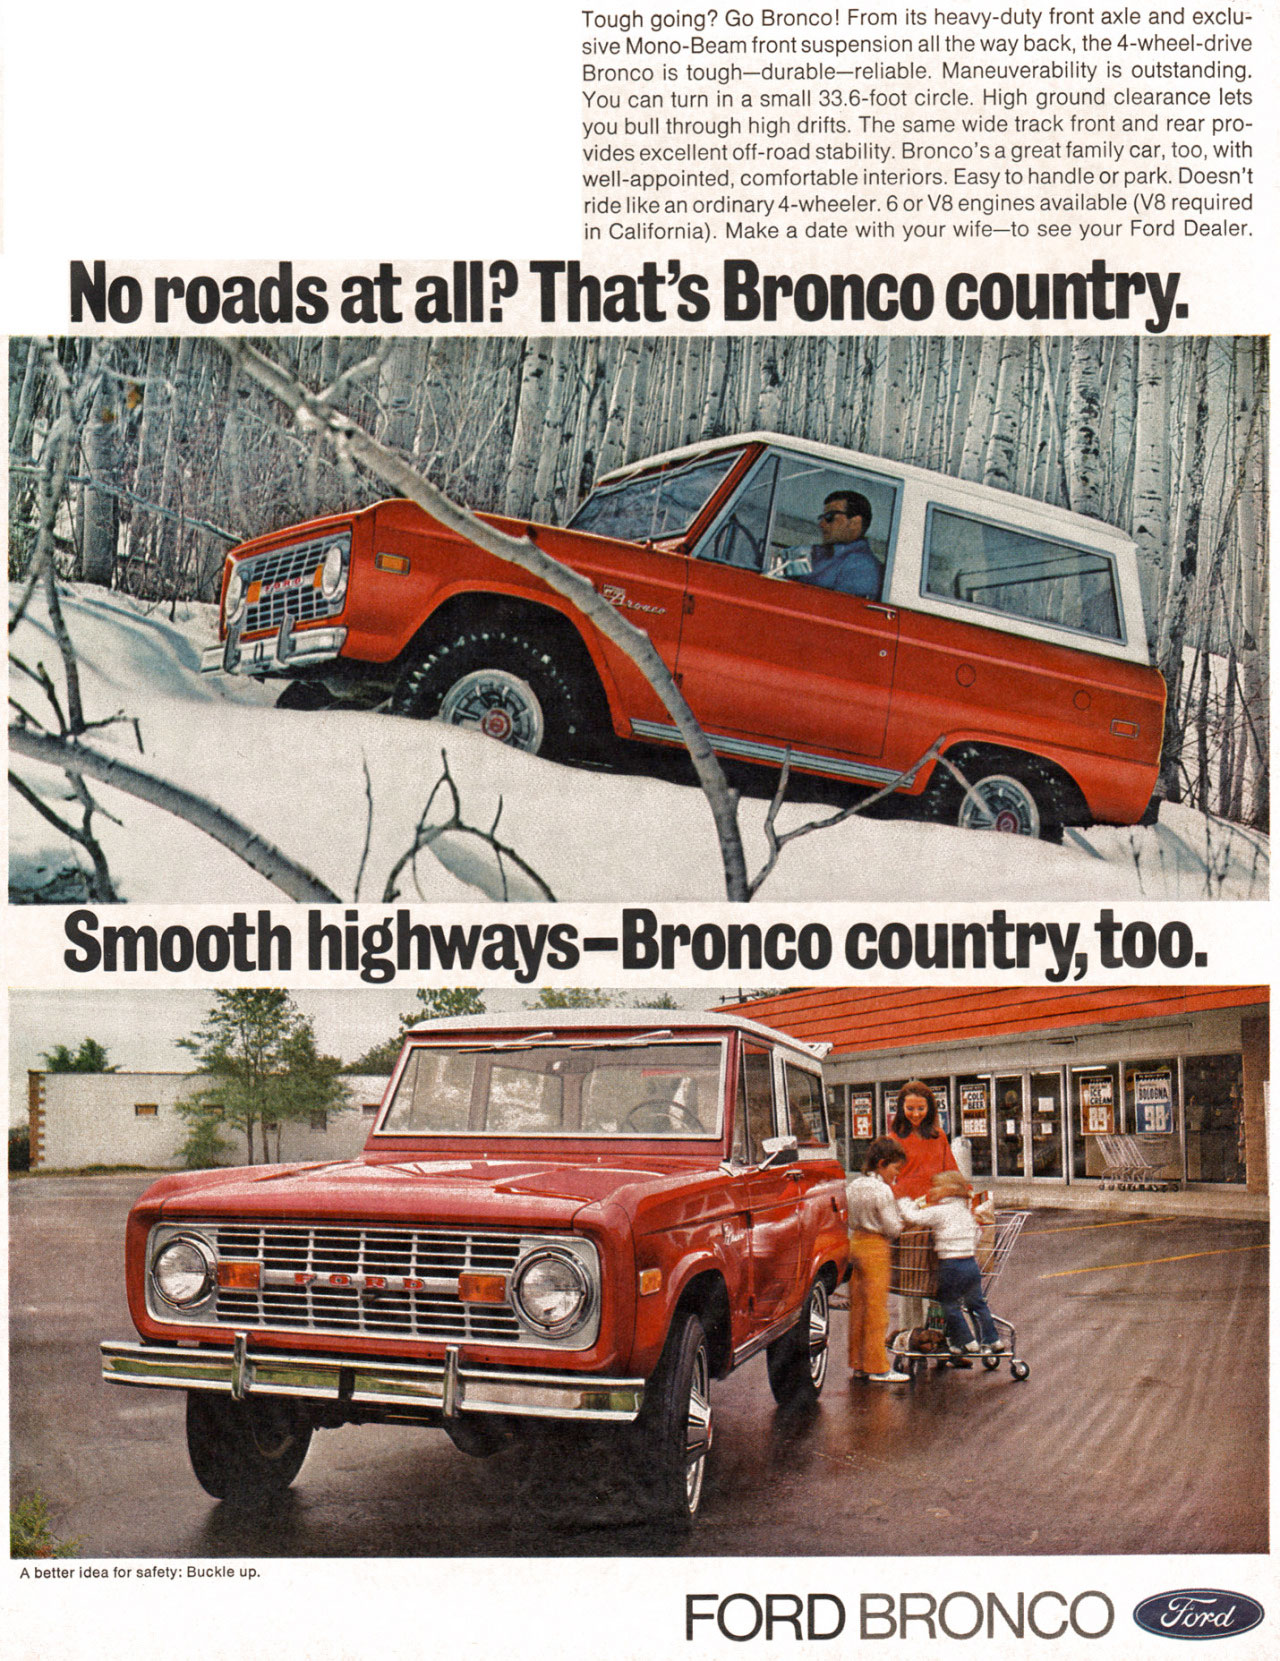 Tough going? Go Bronco! From its heavy-duty front axle and exclu-sive Mono-Beam front suspension all the way back, the 4-wheel-drive Bronco is tough—durable—reliable. Maneuverability is outstanding. You can turn in a small 33.6-foot circle. High ground clearance lets you bull through high drifts. The same wide track front and rear pro-vides excellent off-road stability. Bronco's a great family car, too, with well-appointed, comfortable interiors. Easy to handle or park. Doesn't ride like an ordinary 4-wheeler. 6 or V8 engines available (V8 required in California). Make a date with your wife—to see your Ford Dealer.  No roads at all? That's Bronco country.   Smooth highways-Bronco country, too.   A better idea for safety: Buckle up.  FORD BRONCO 42110